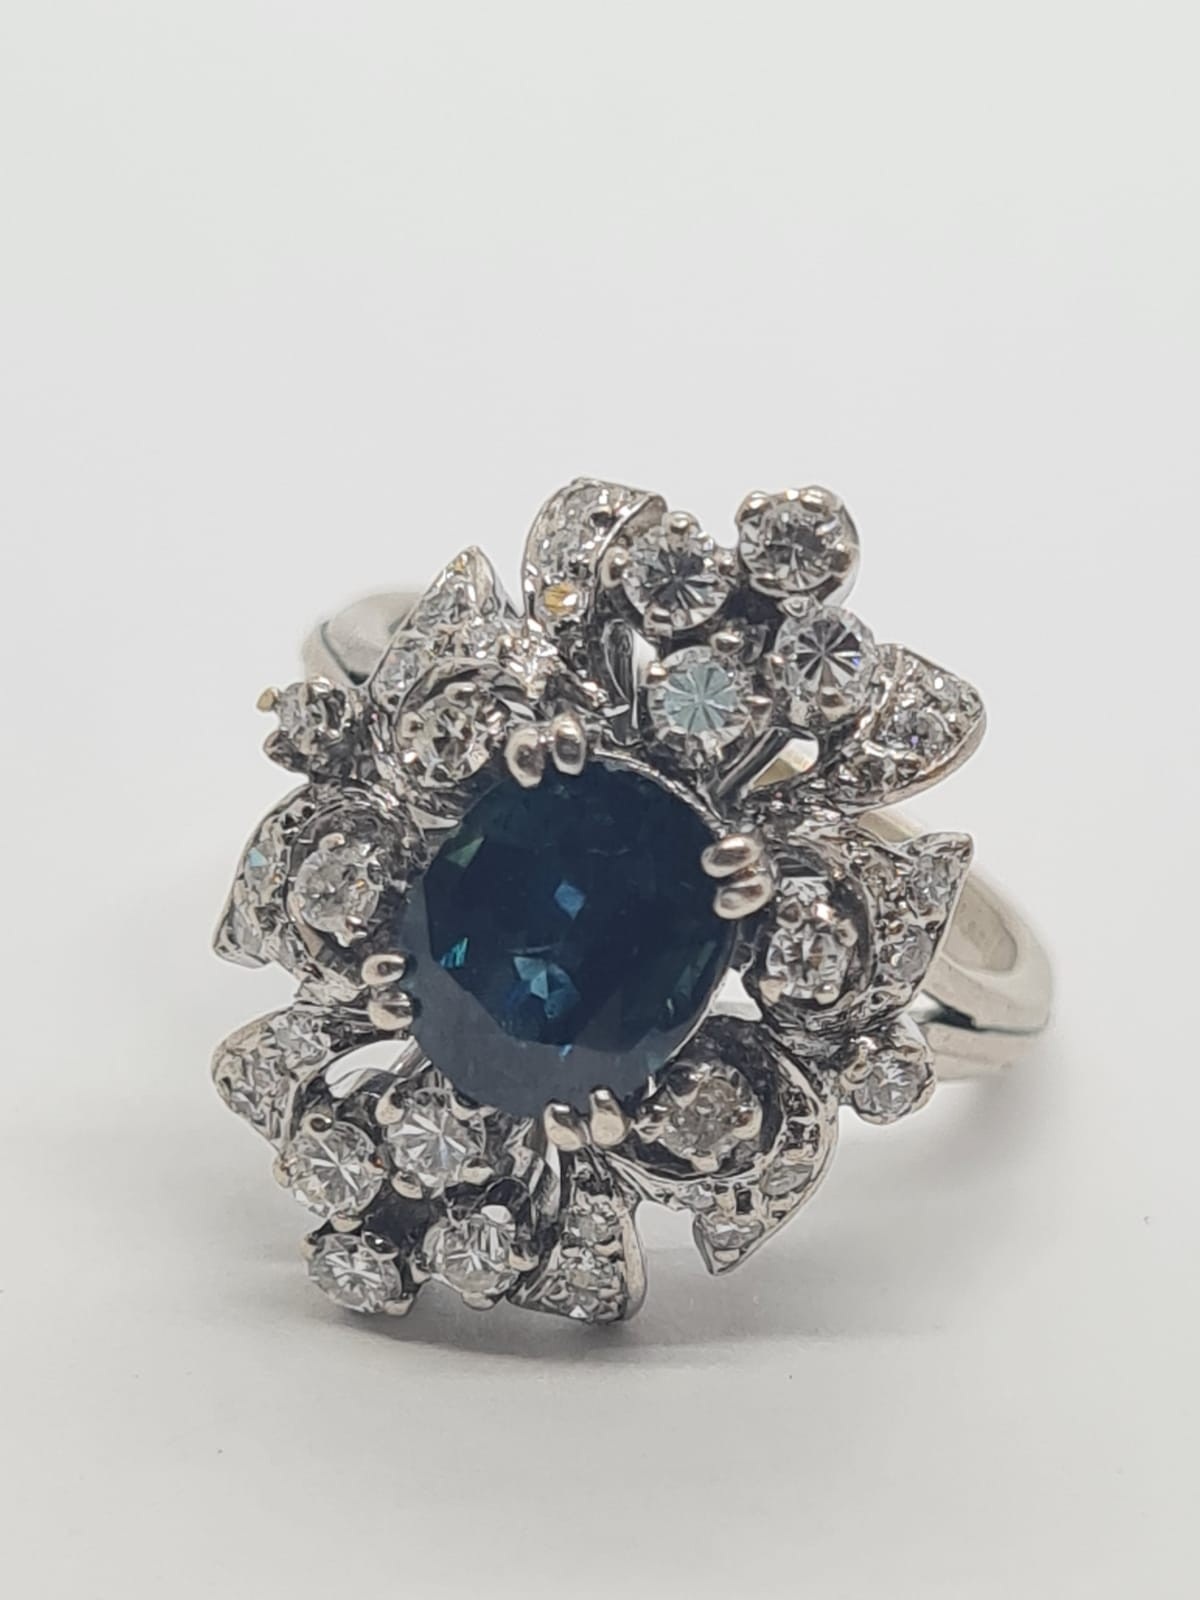 14k white gold diamond cluster ring with sapphire centre marked Tiffany & Co , weight 6.2g and - Image 6 of 7